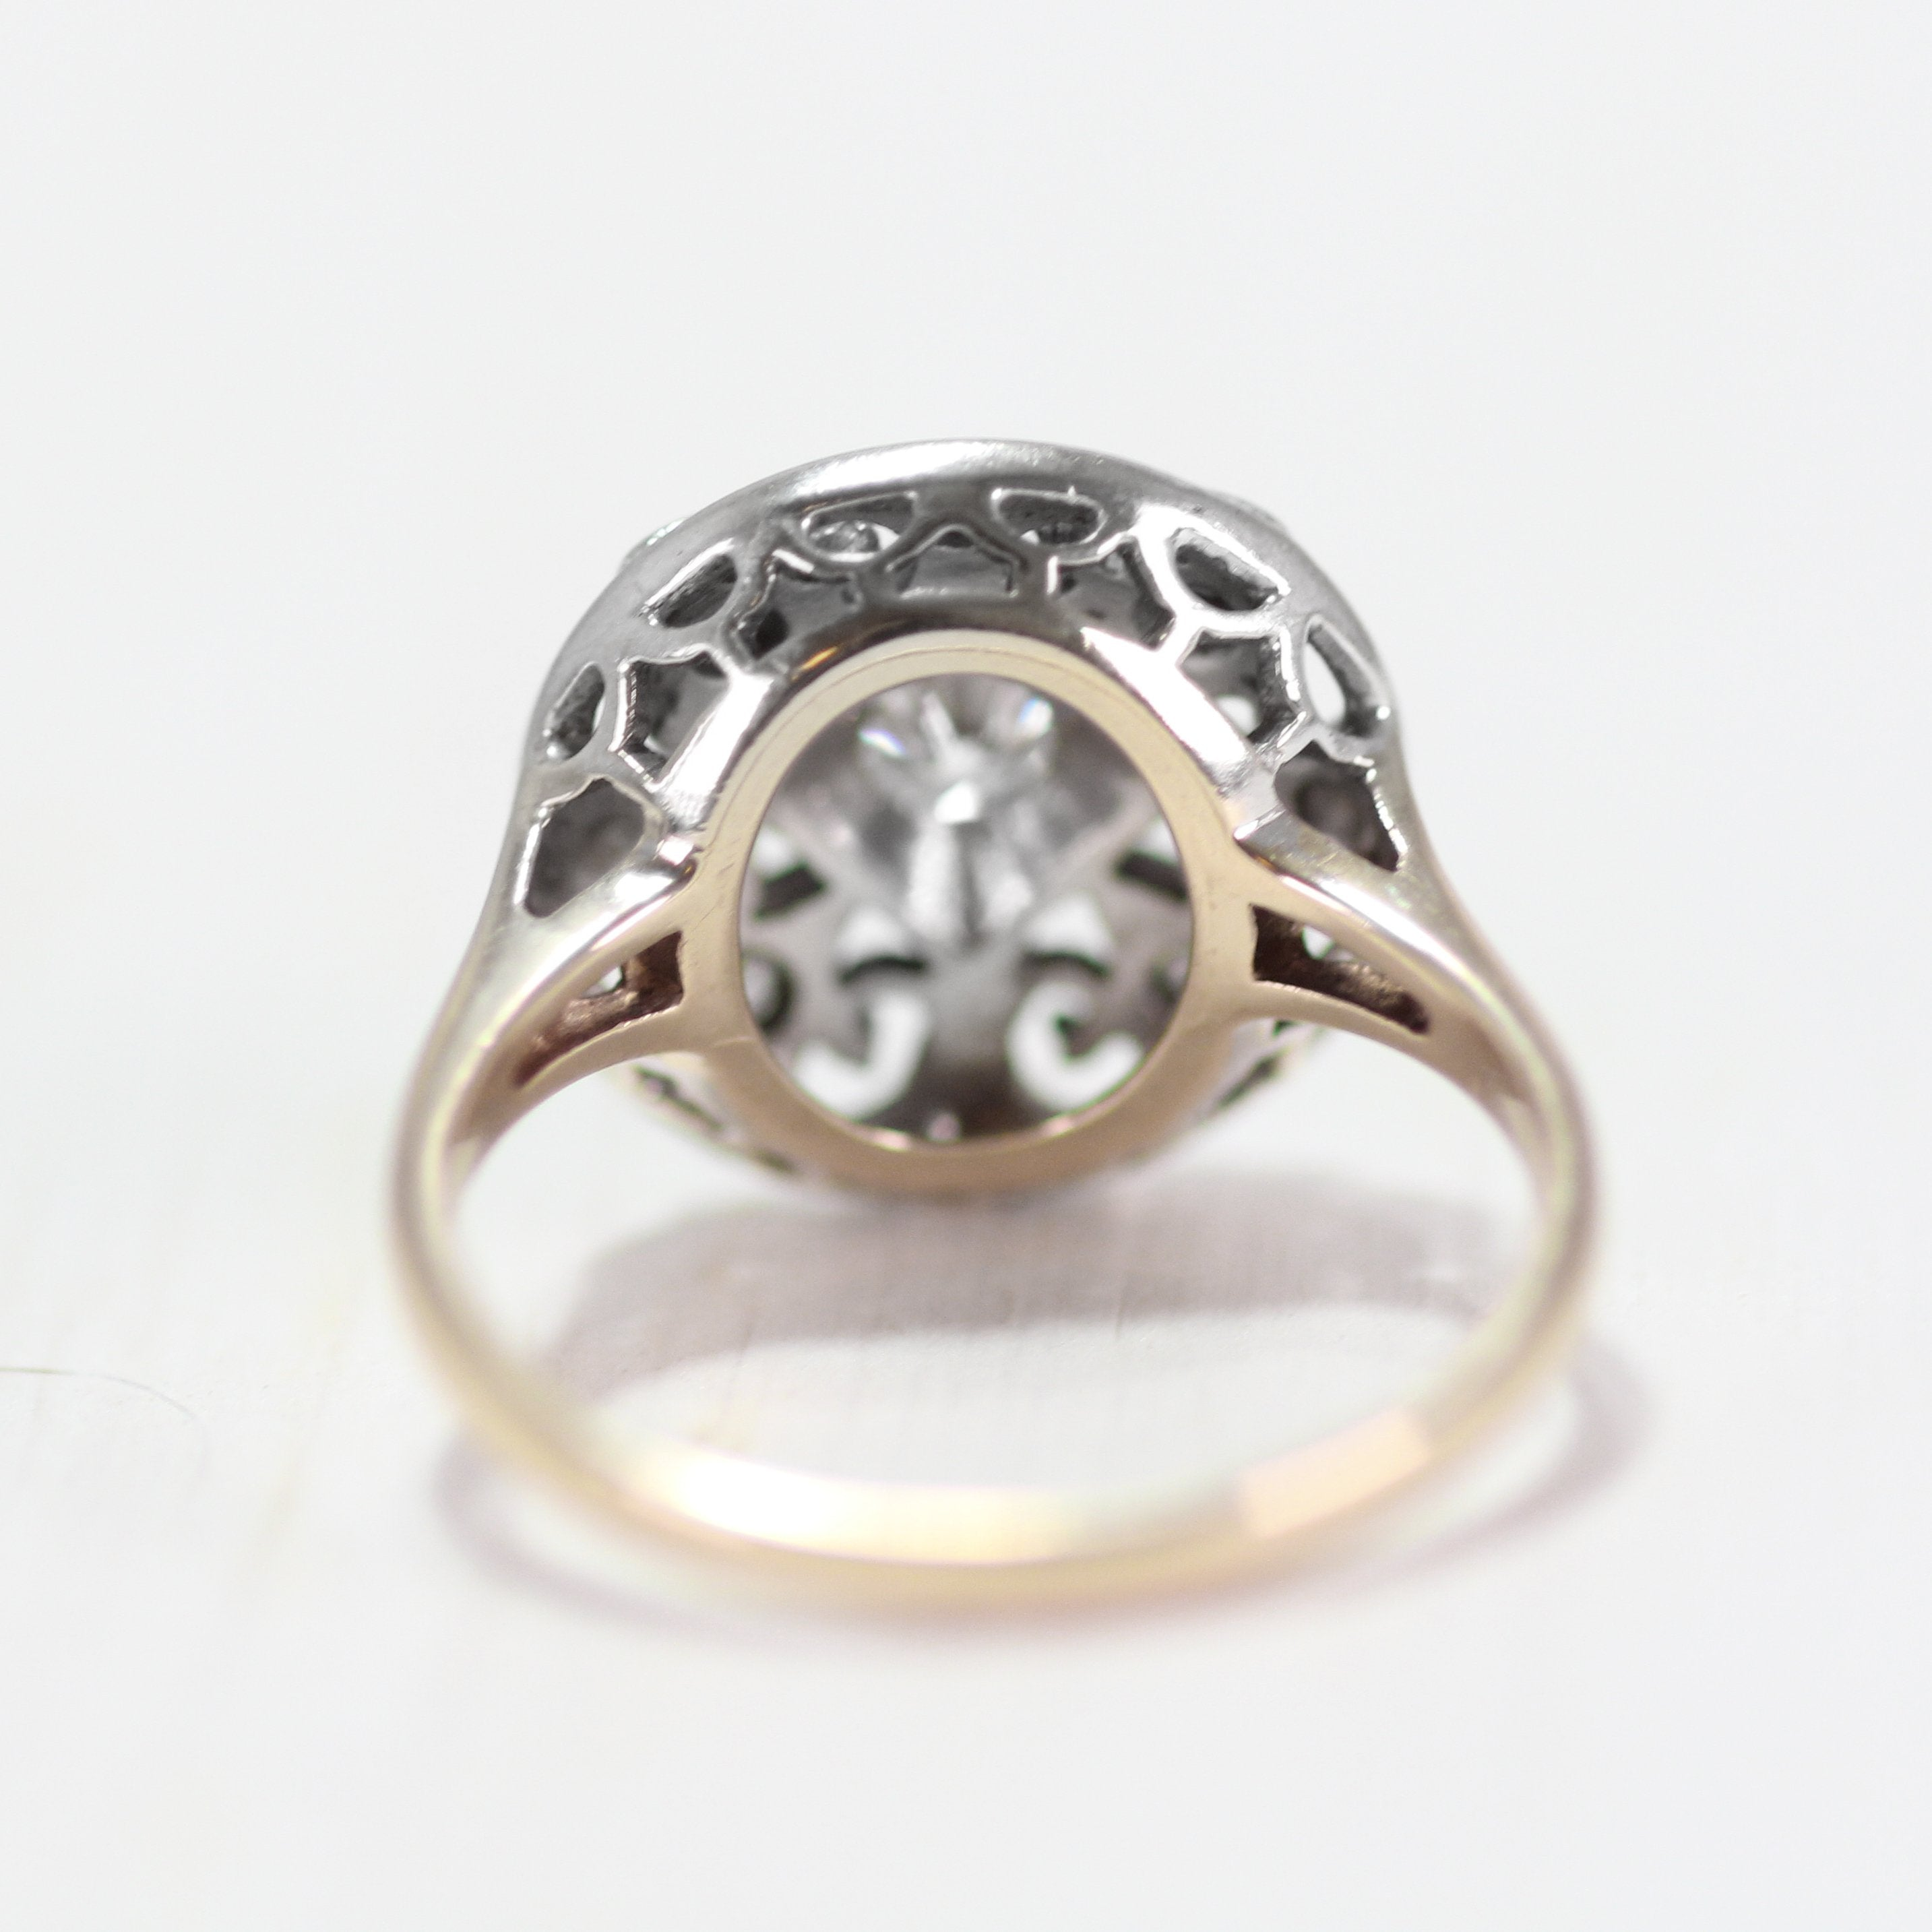 Joan - Antique Diamond Mixed Metal Ring - Filigree